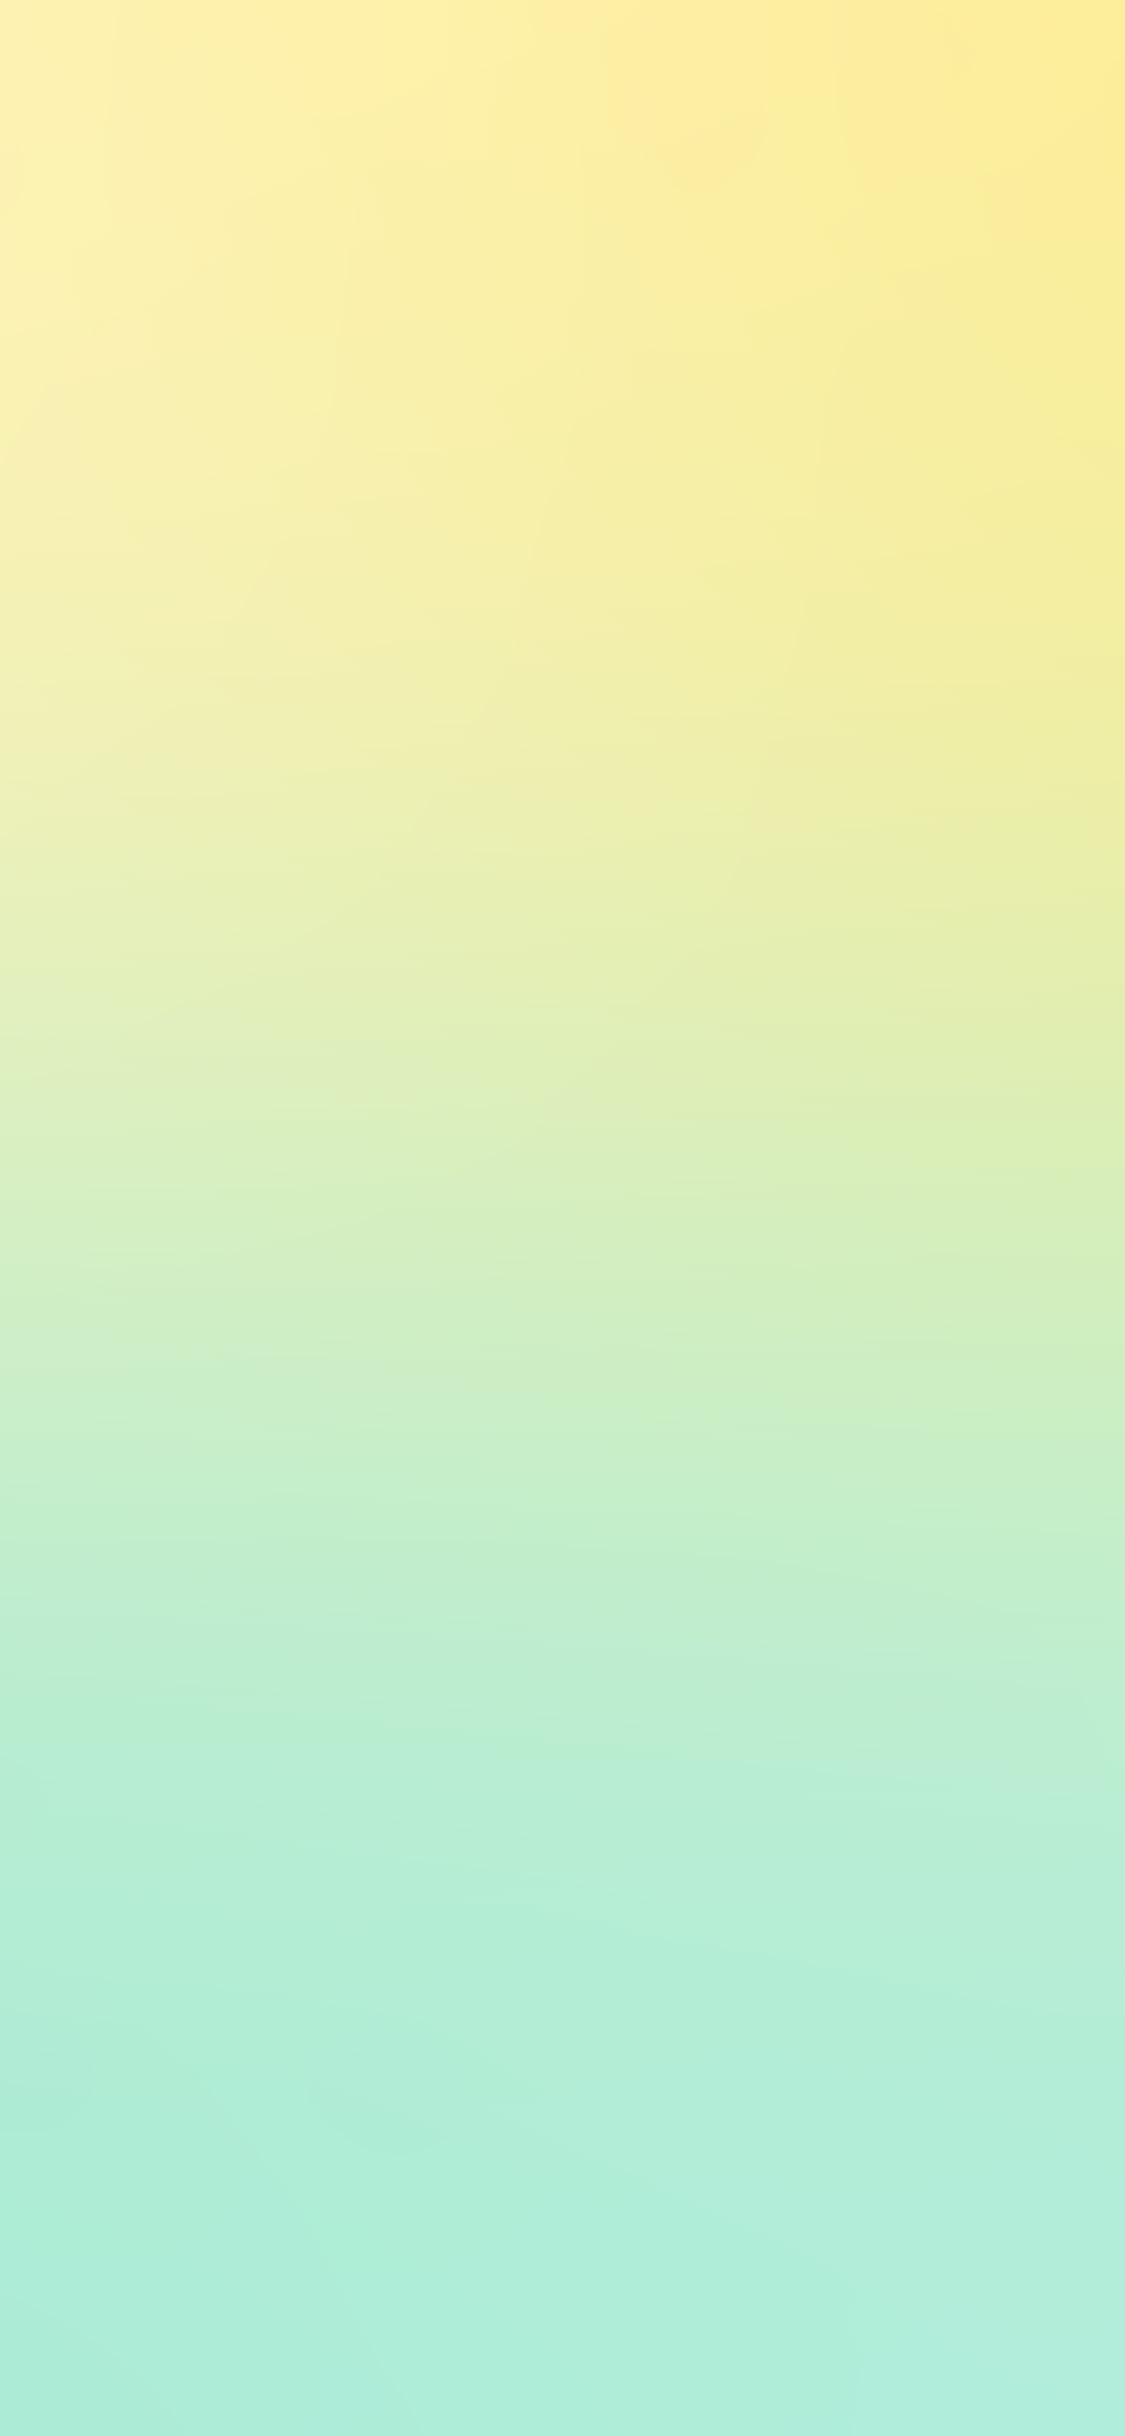 iPhonexpapers.com-Apple-iPhone-wallpaper-so16-yellow-soft-pastel-blur-gradation